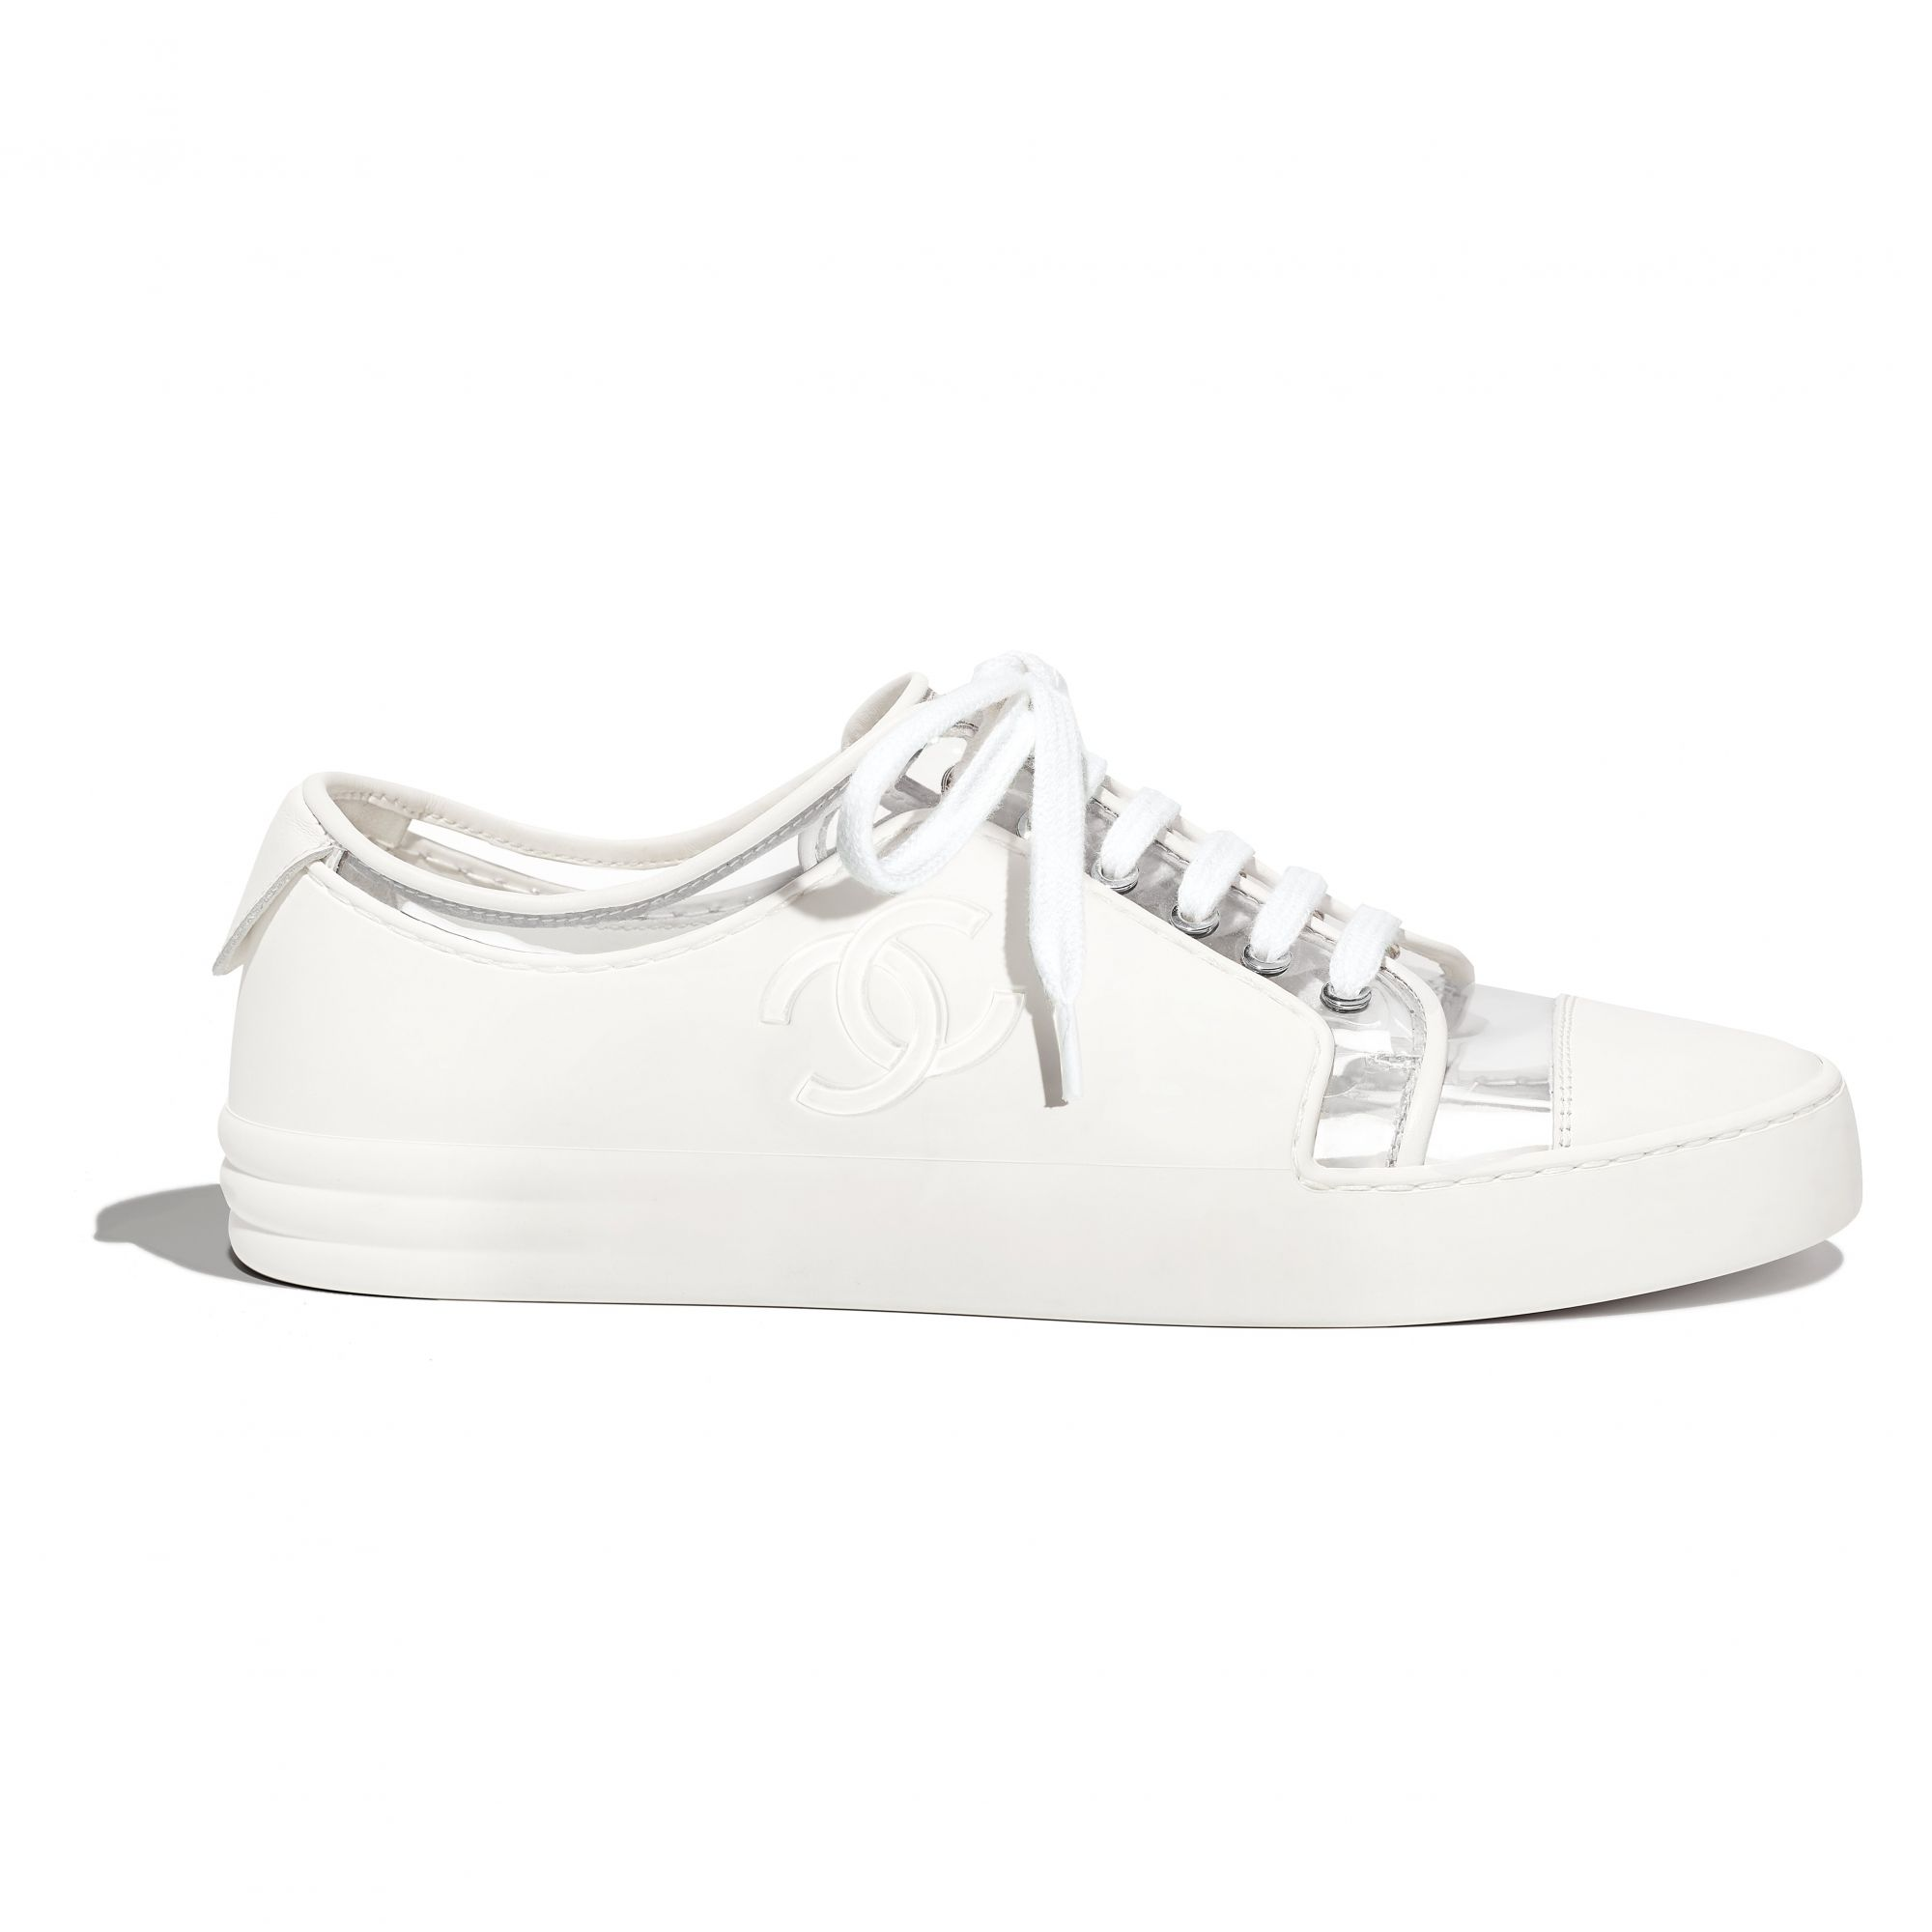 White sneakers in leather, fabric and rubber